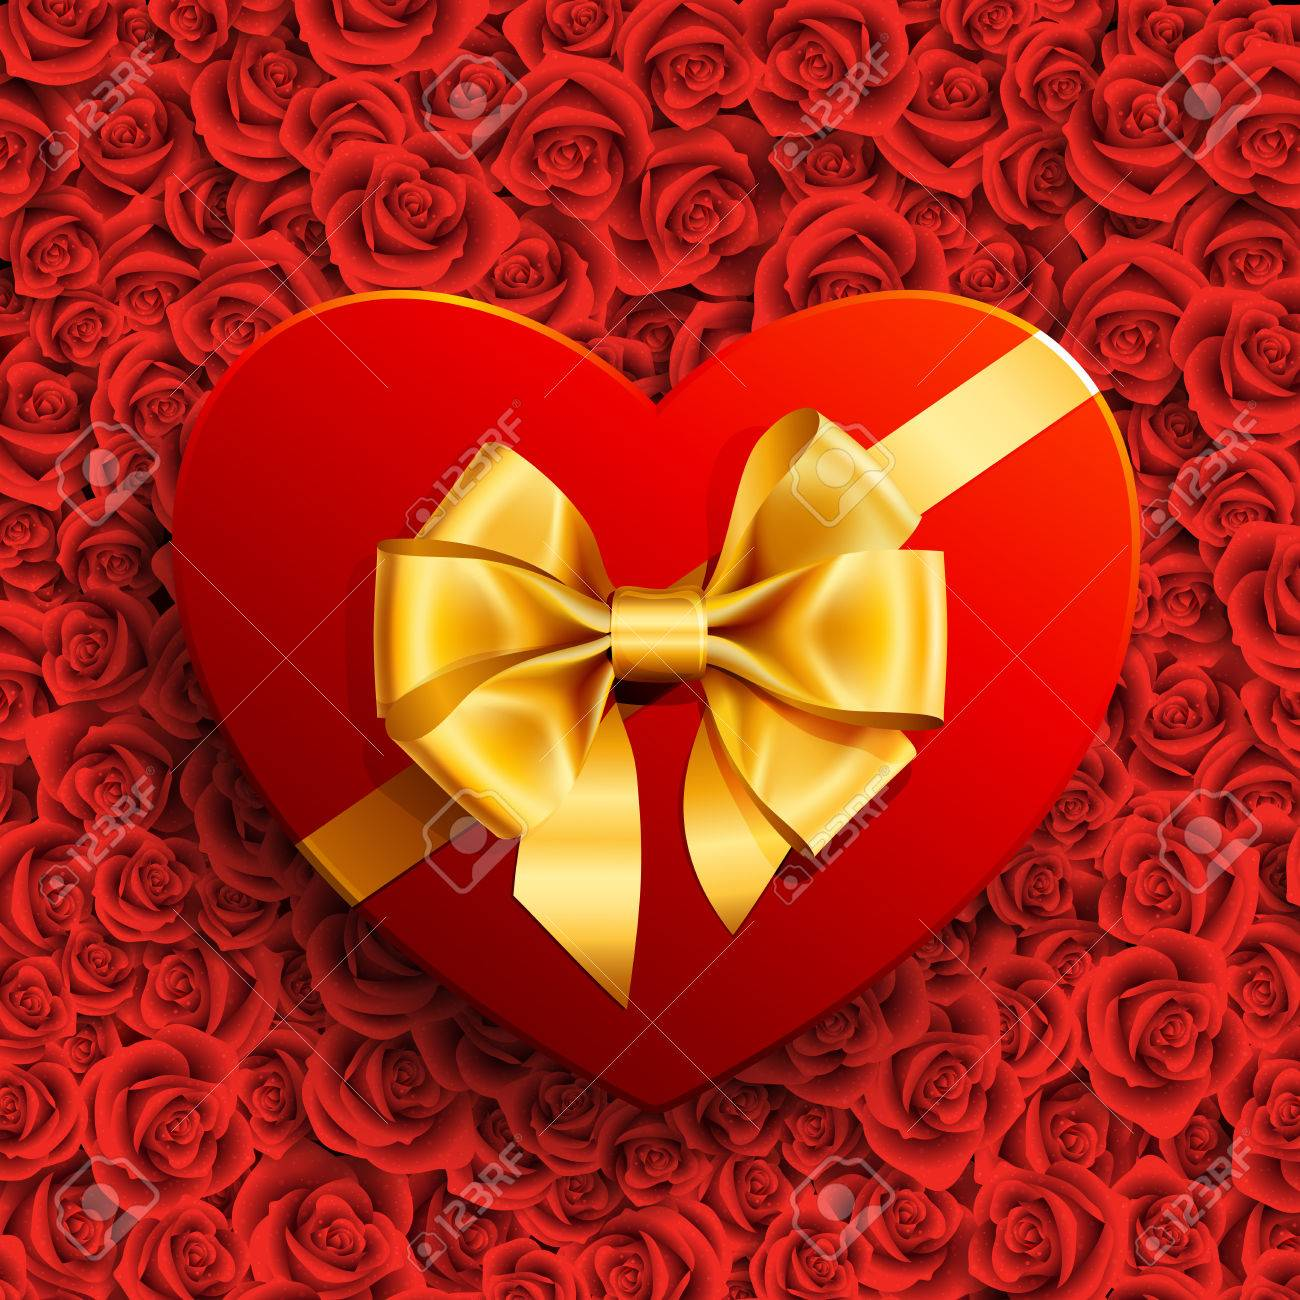 Red heart shape gift with golden bow on roses background Stock Vector - 8698771